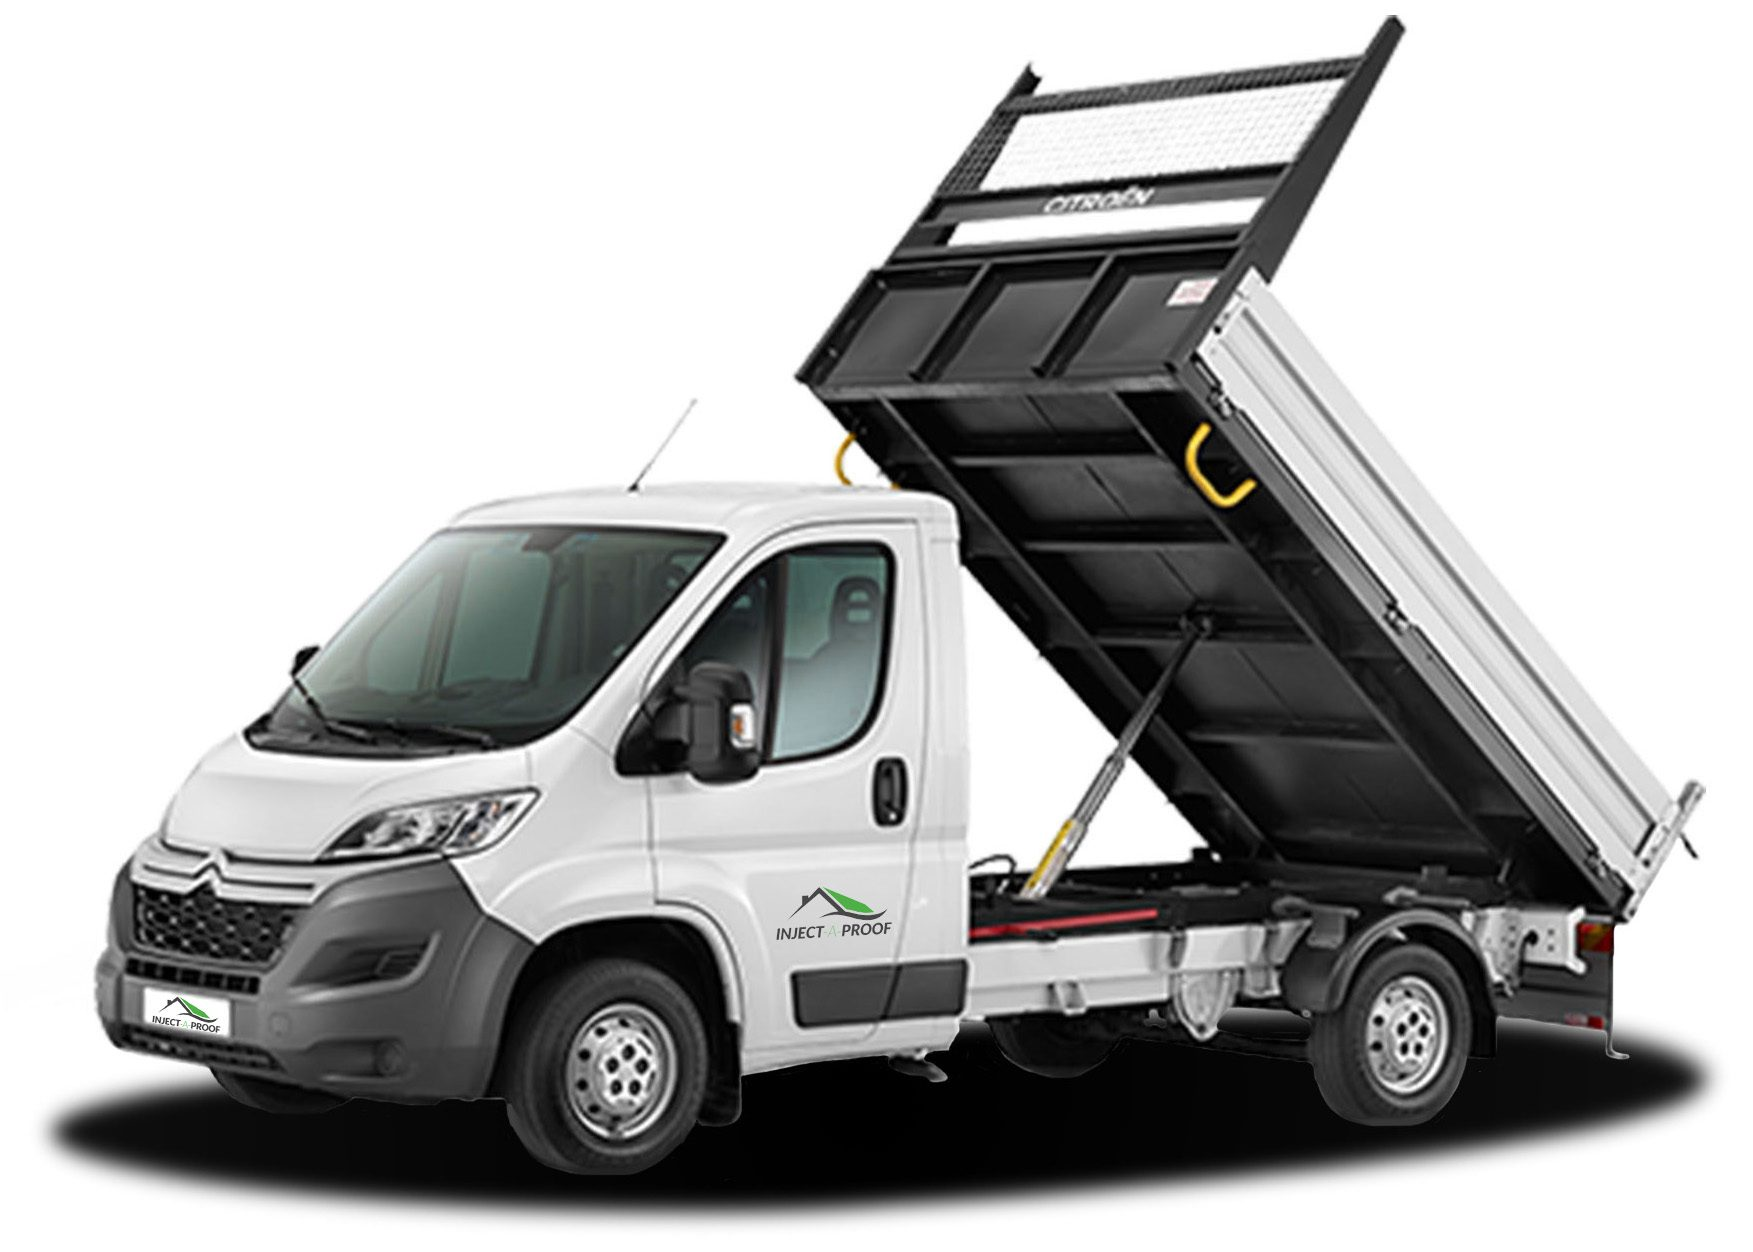 builders waste removal service